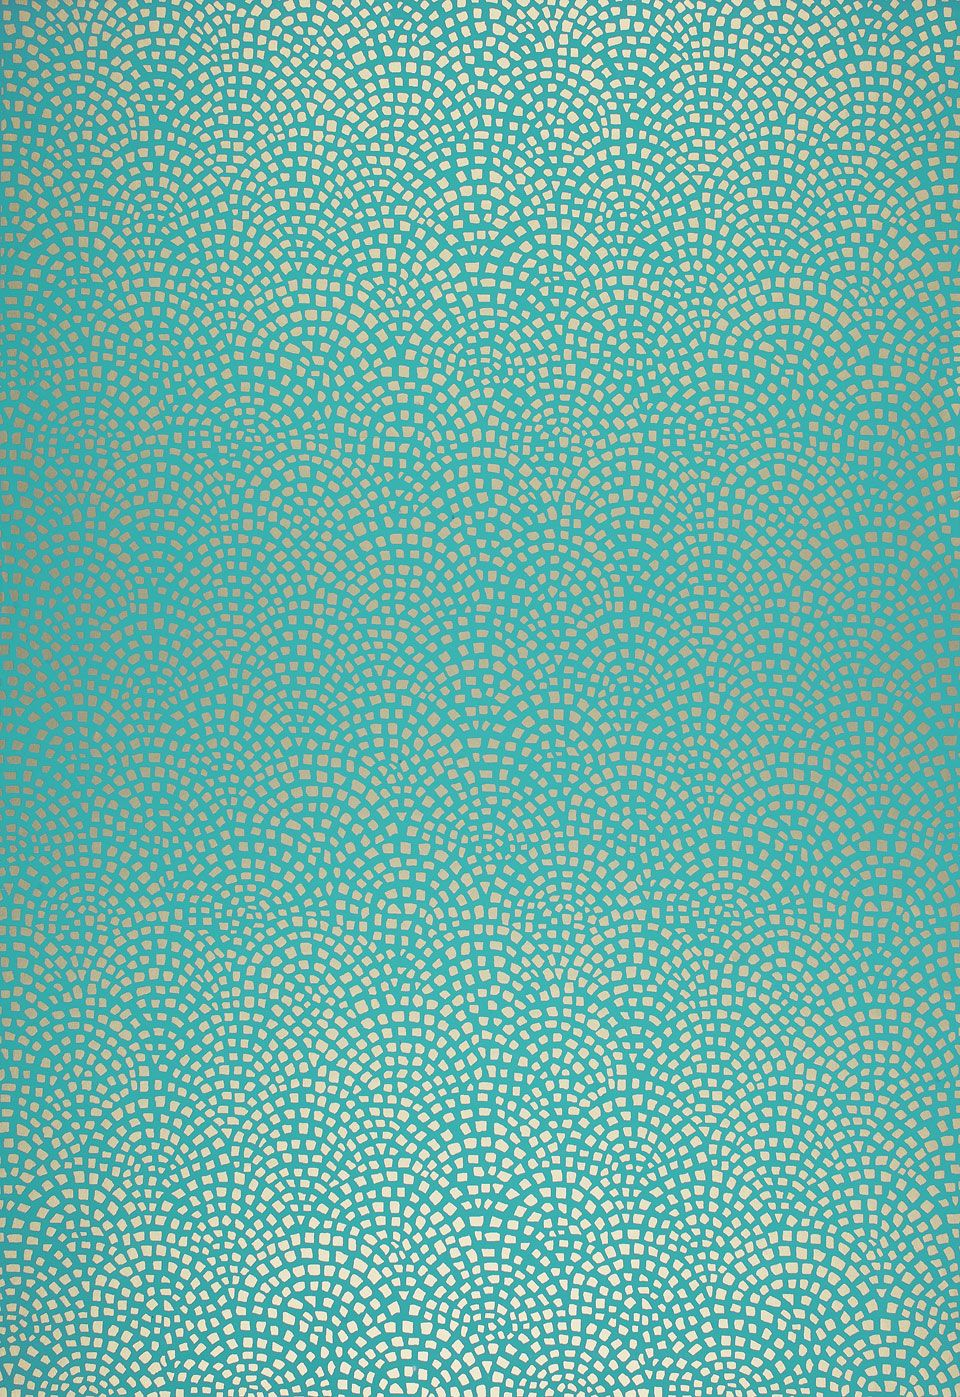 Mosiac aqua wallpaper from schumacher this geometric for Salon turquoise